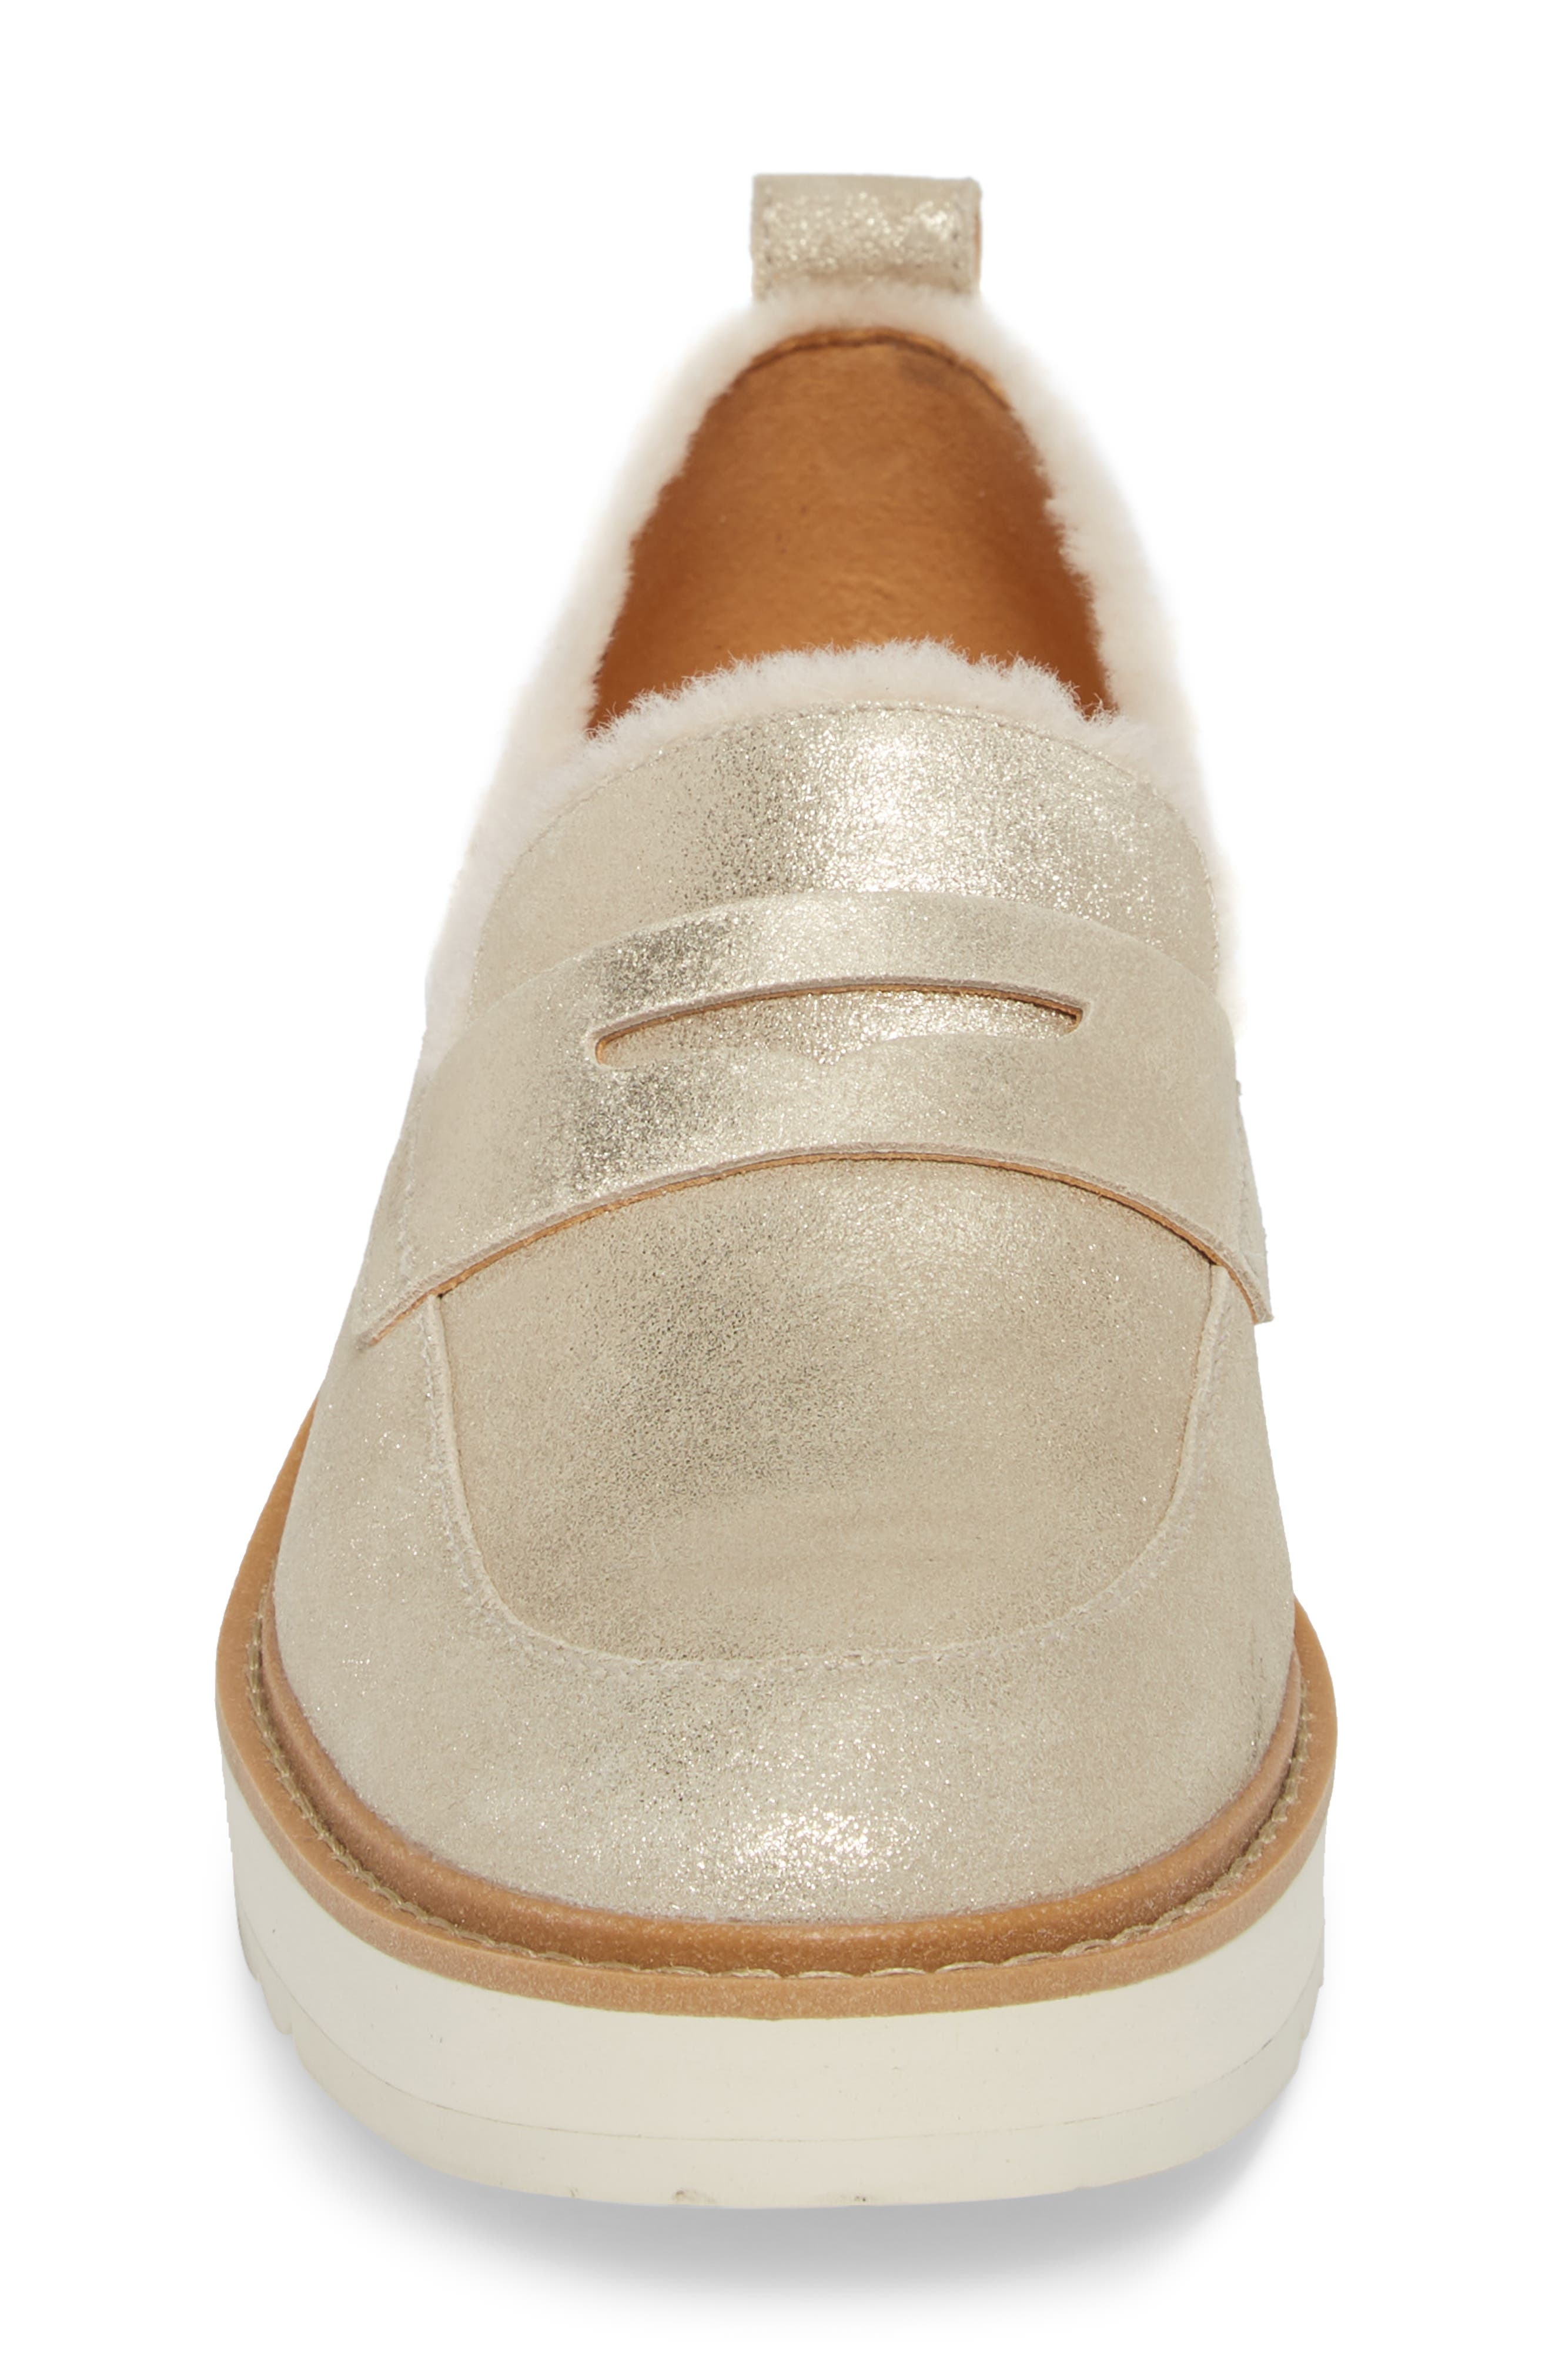 Atwater Metallic Wedge Loafer,                             Alternate thumbnail 4, color,                             710